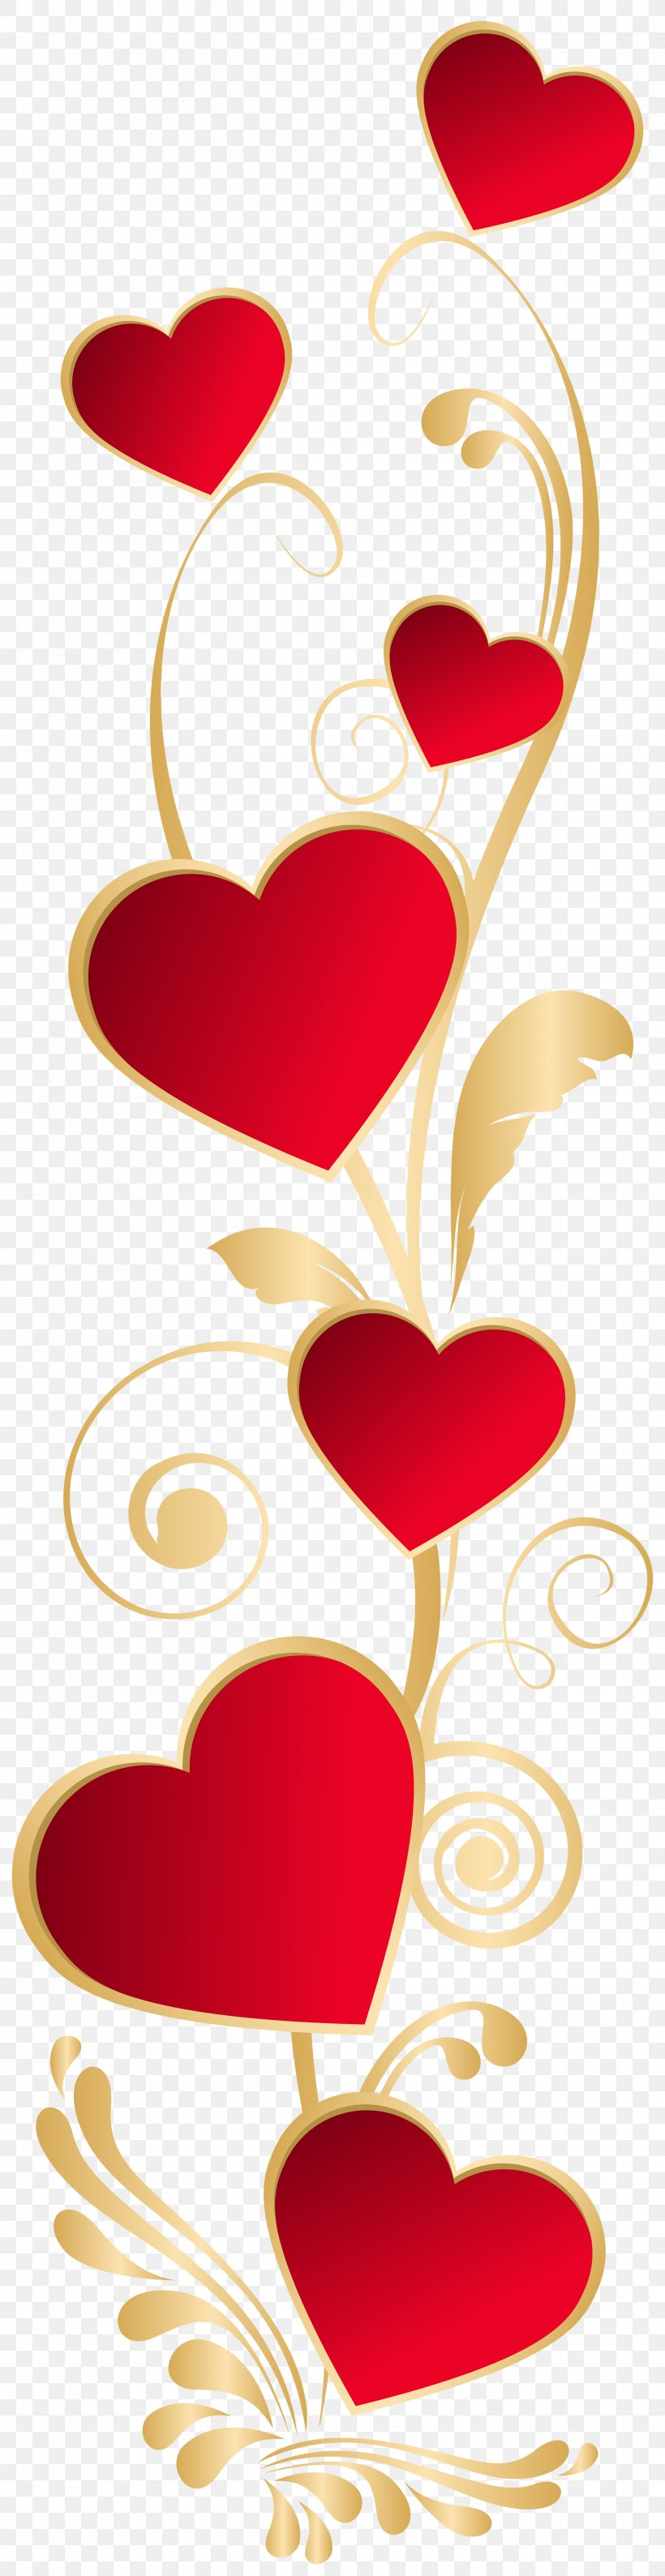 Heart Valentine's Day Clip Art, PNG, 2064x8000px, Heart, Art, Clip Art, Decorative Arts, Flower Download Free